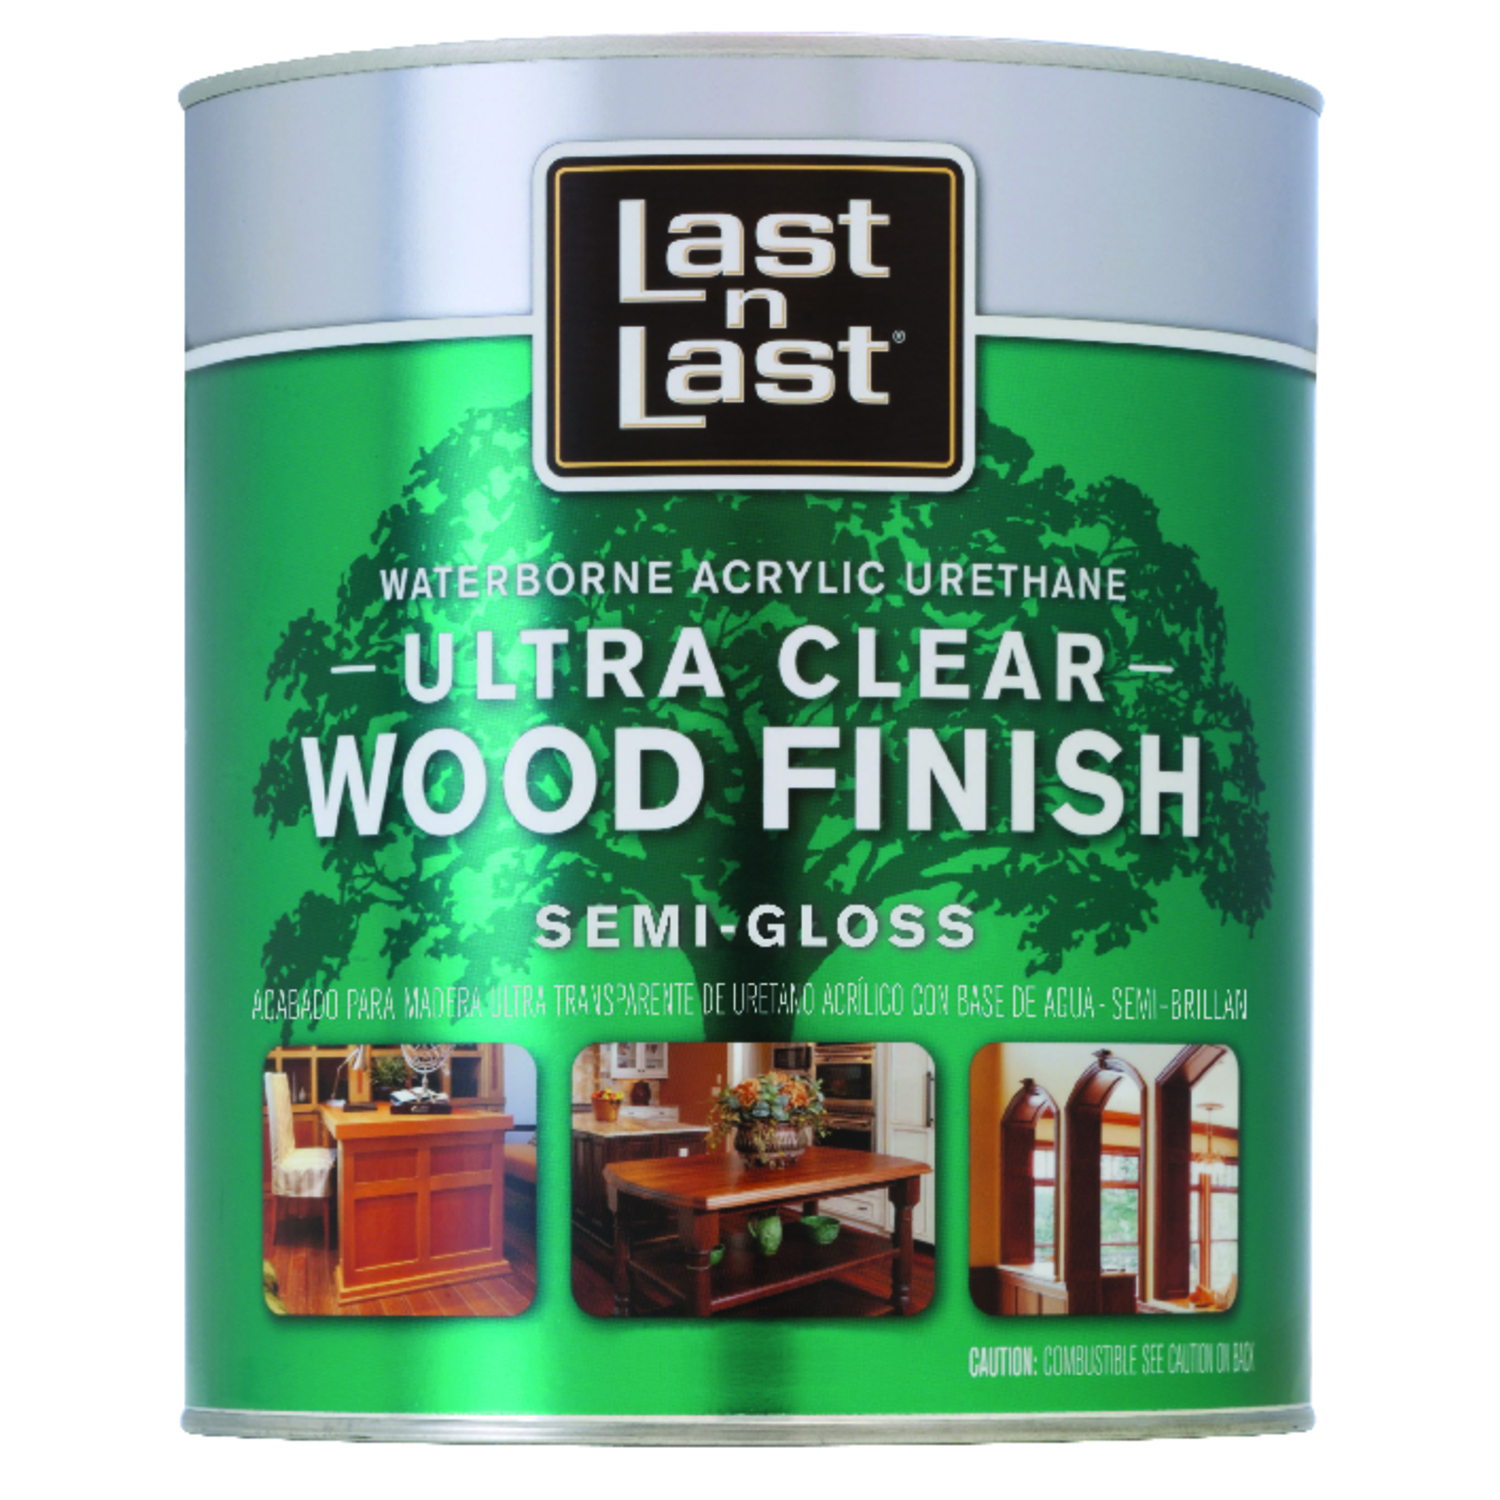 Last N Last Waterborne Wood Finish Acrylic Urethane  Semi-Gloss   Ultra Clear 1 Qt.  275 VOC g/l